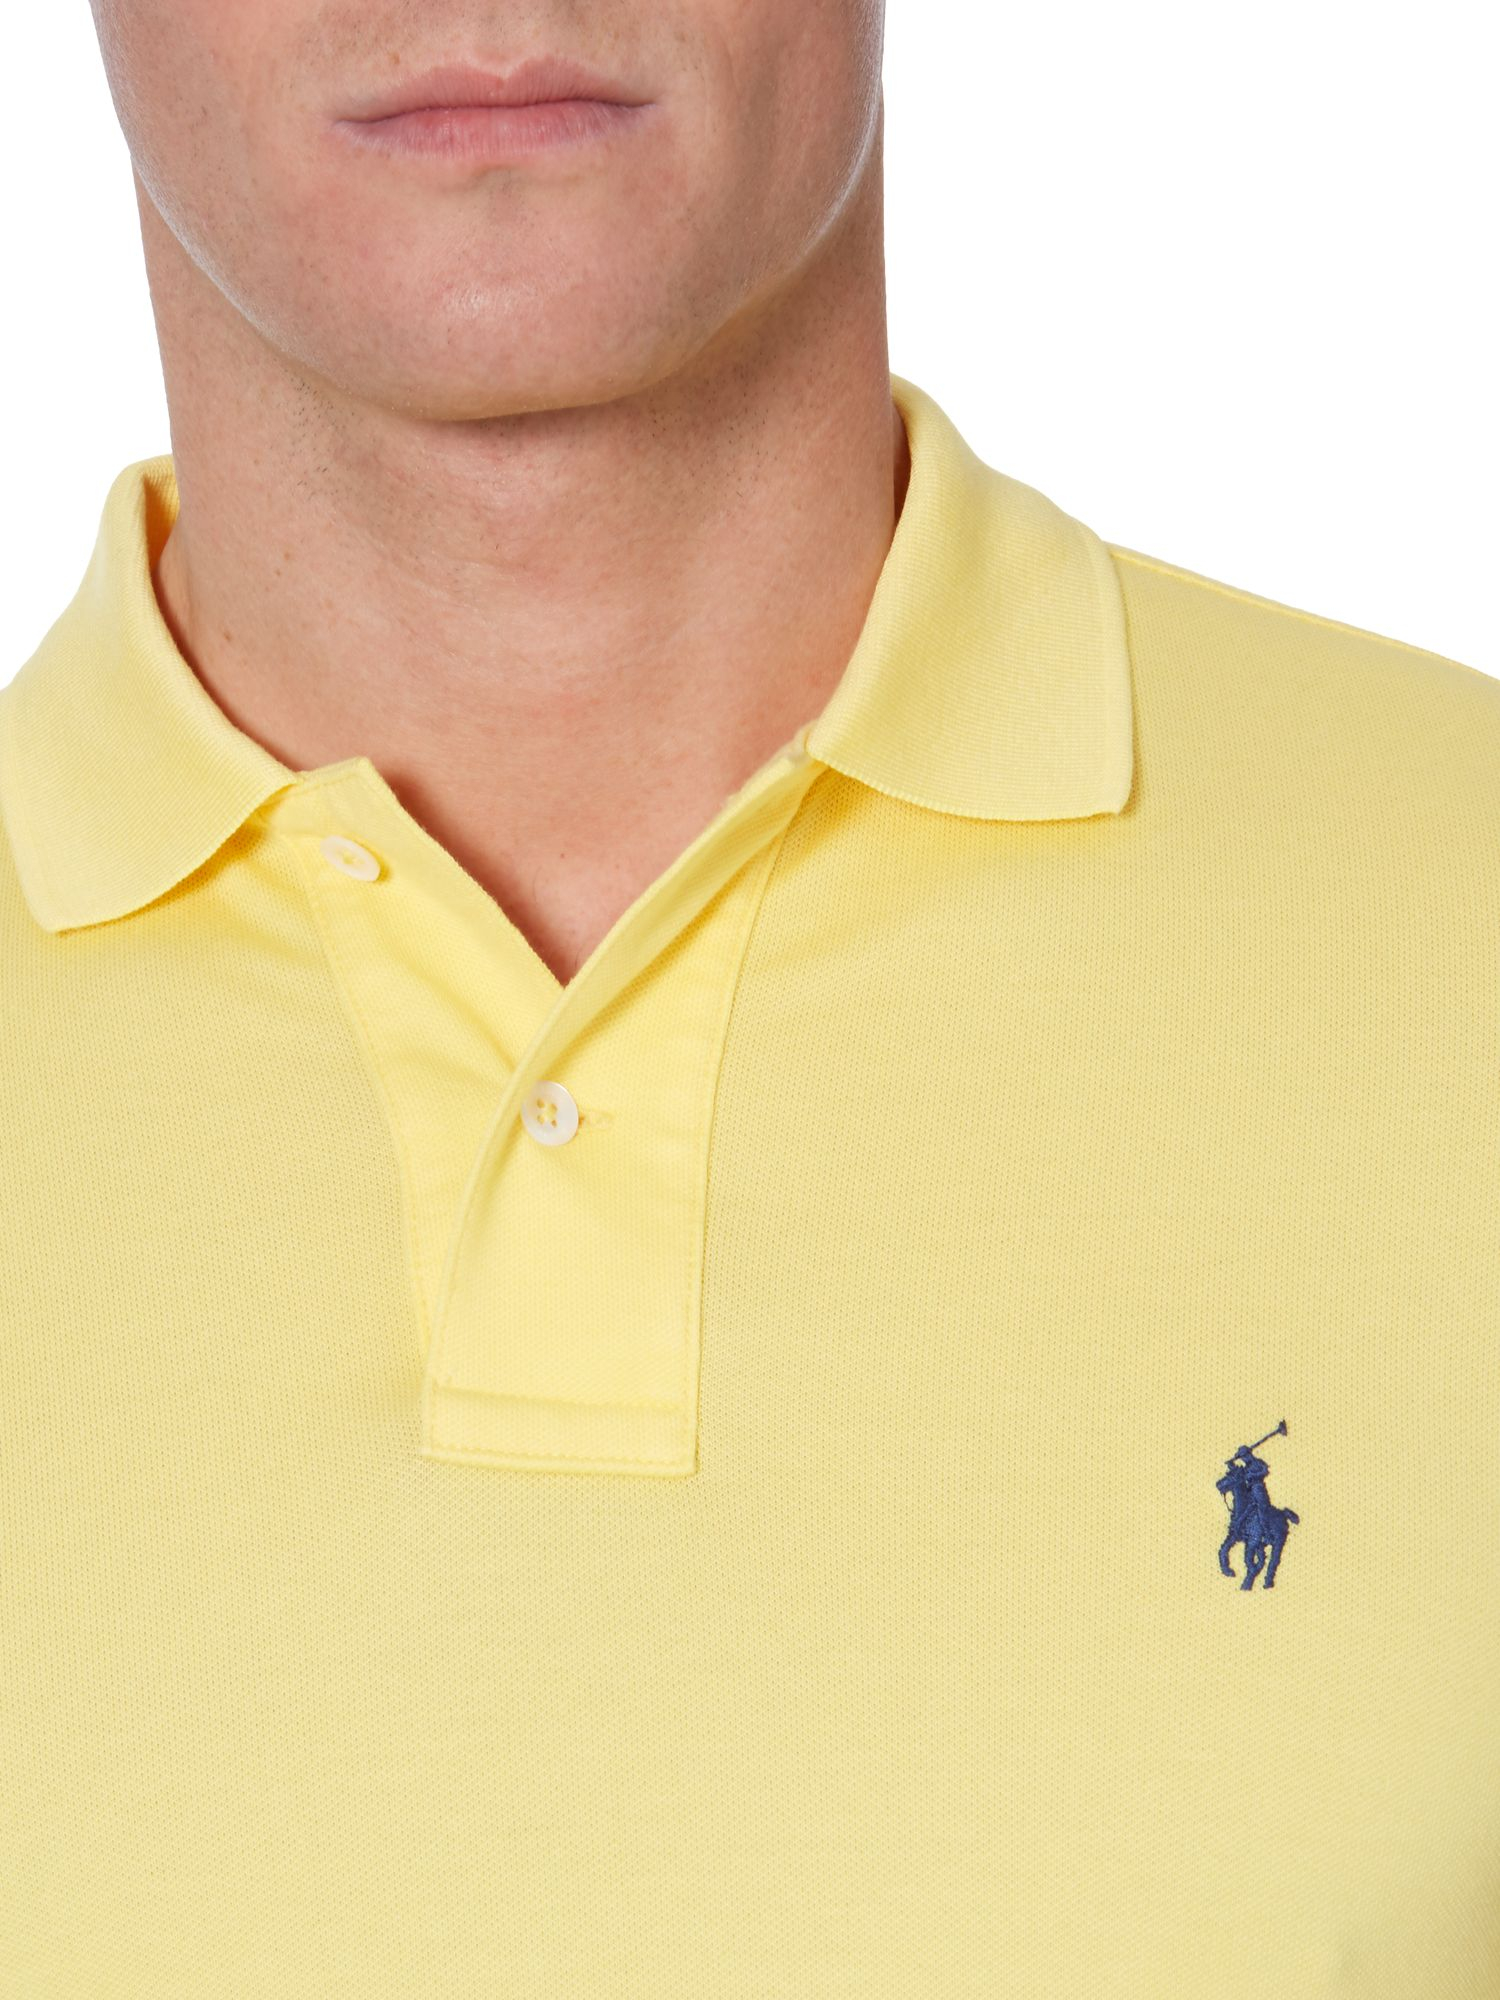 Polo Ralph Lauren Shirts Myer